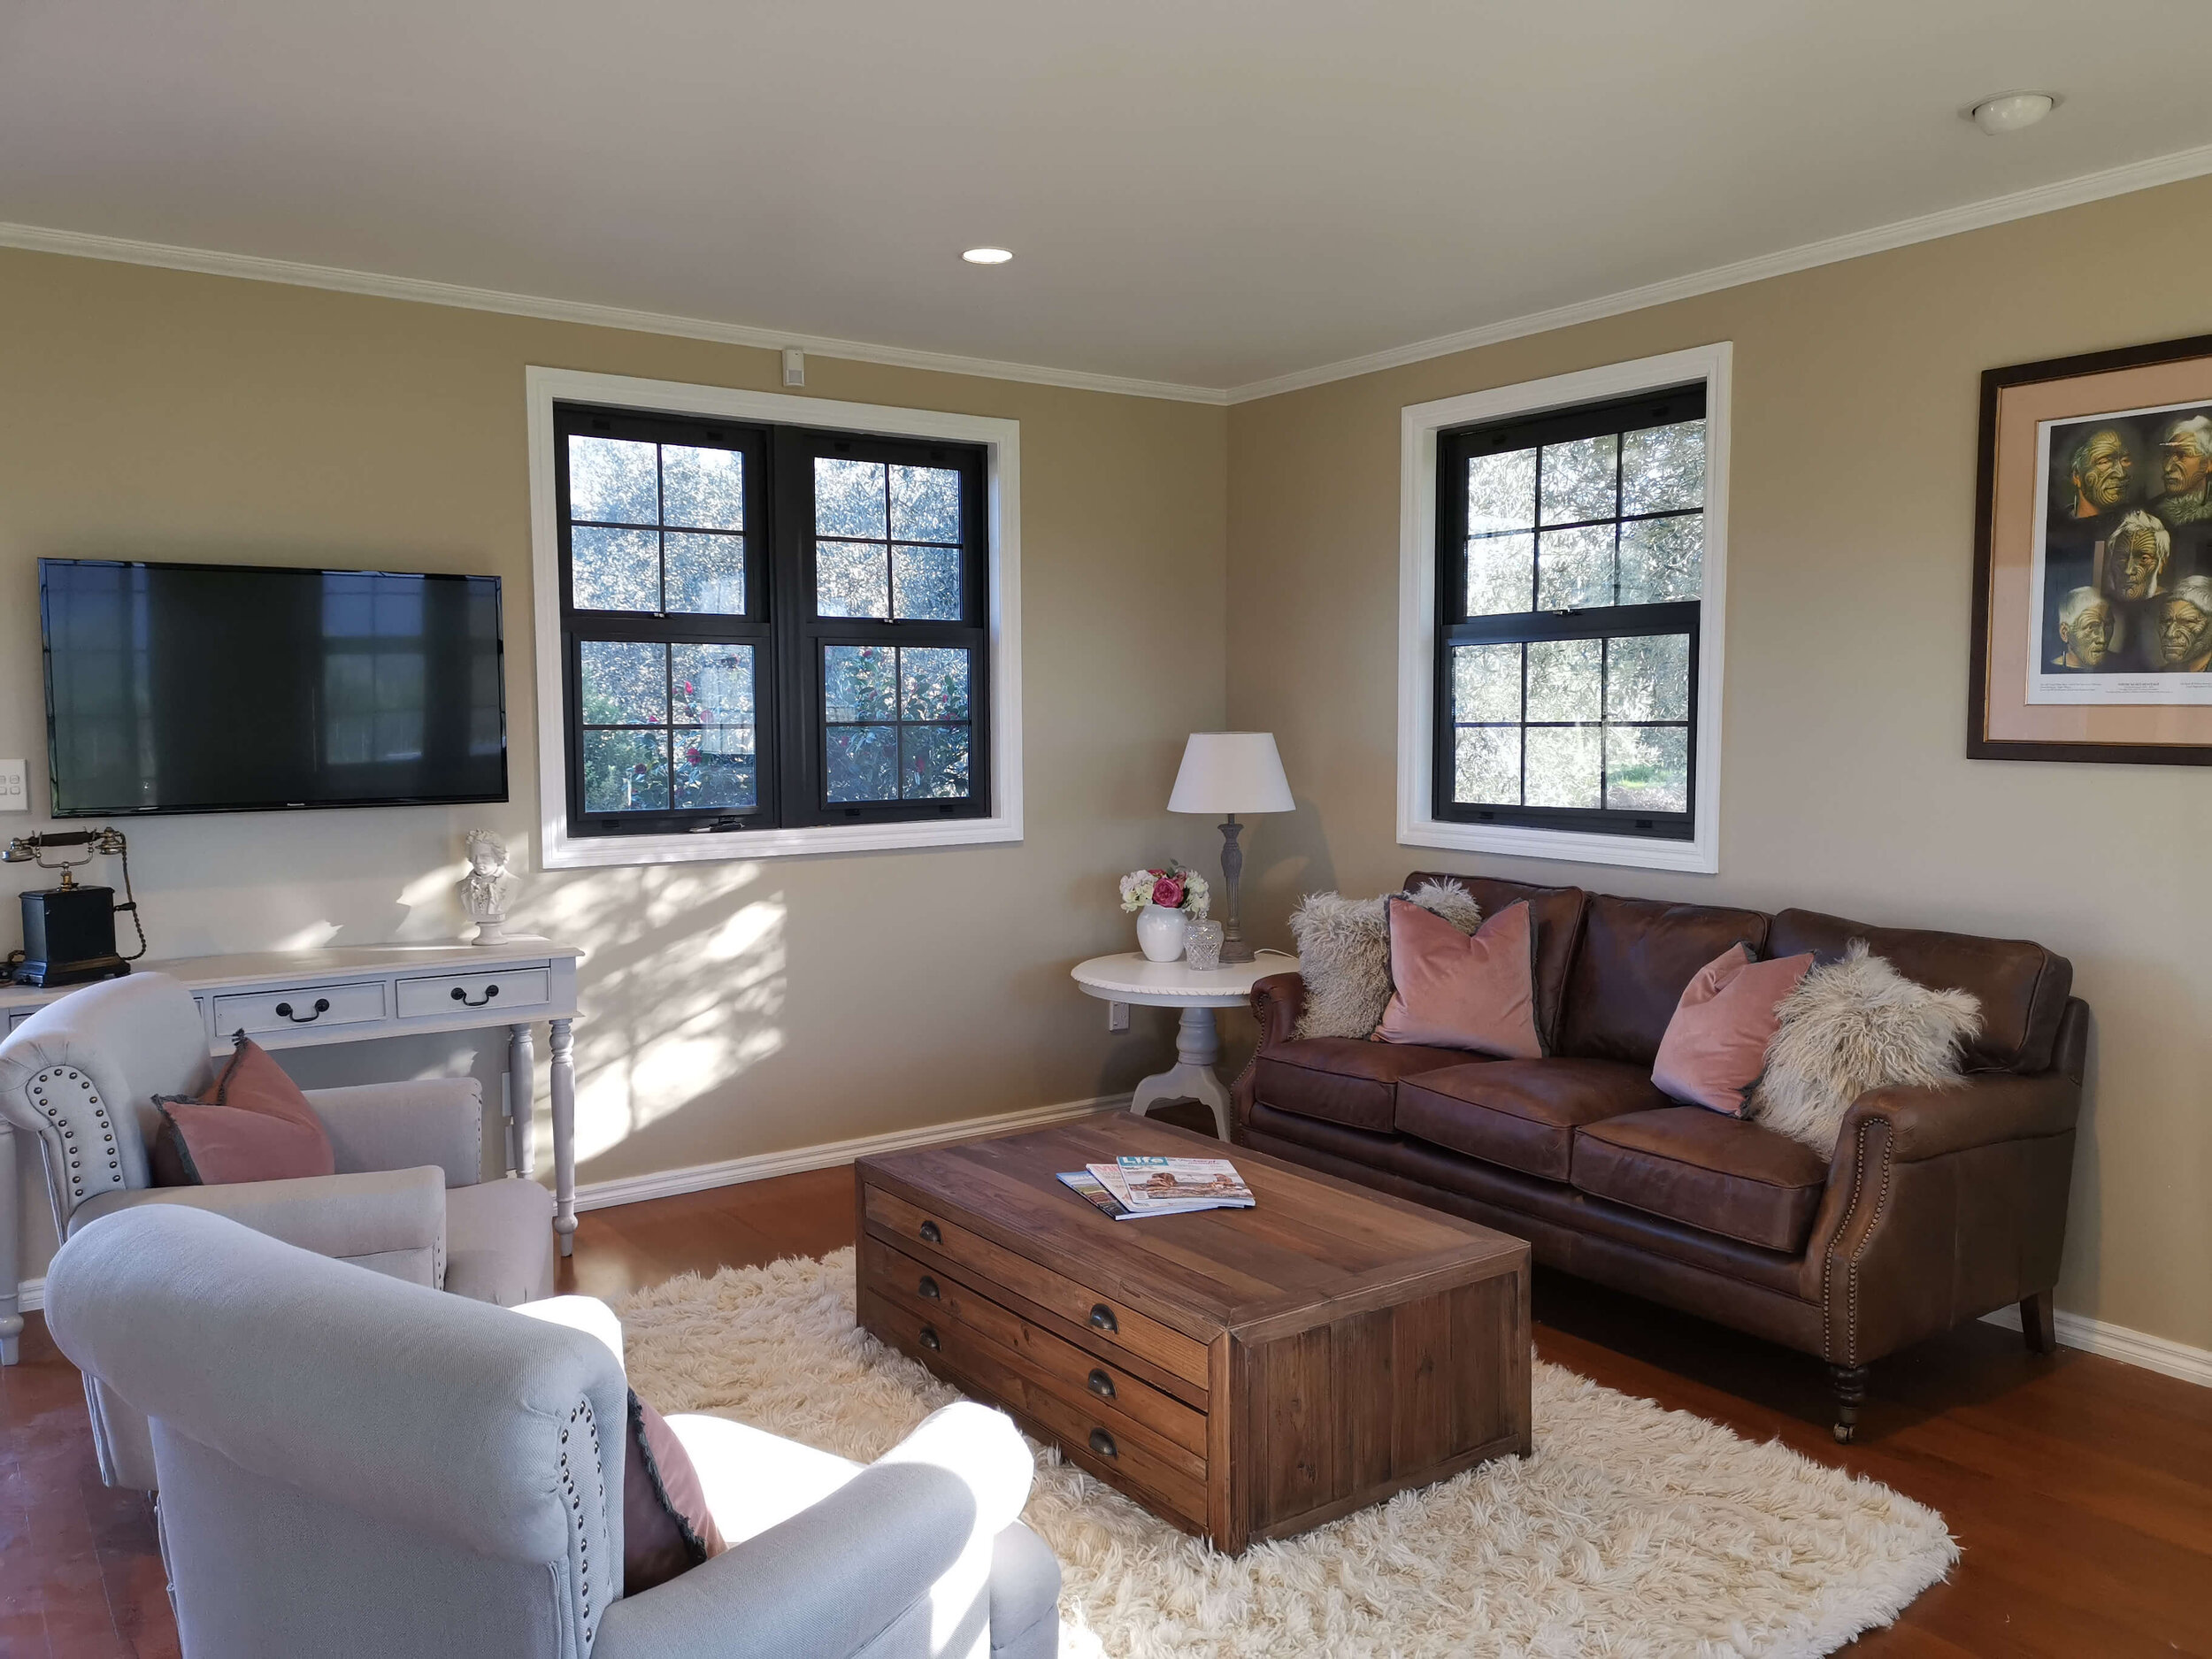 The newly renovated lounge of Vineyard Cottage offers a cozy place to relax after a full day sight-seeing.